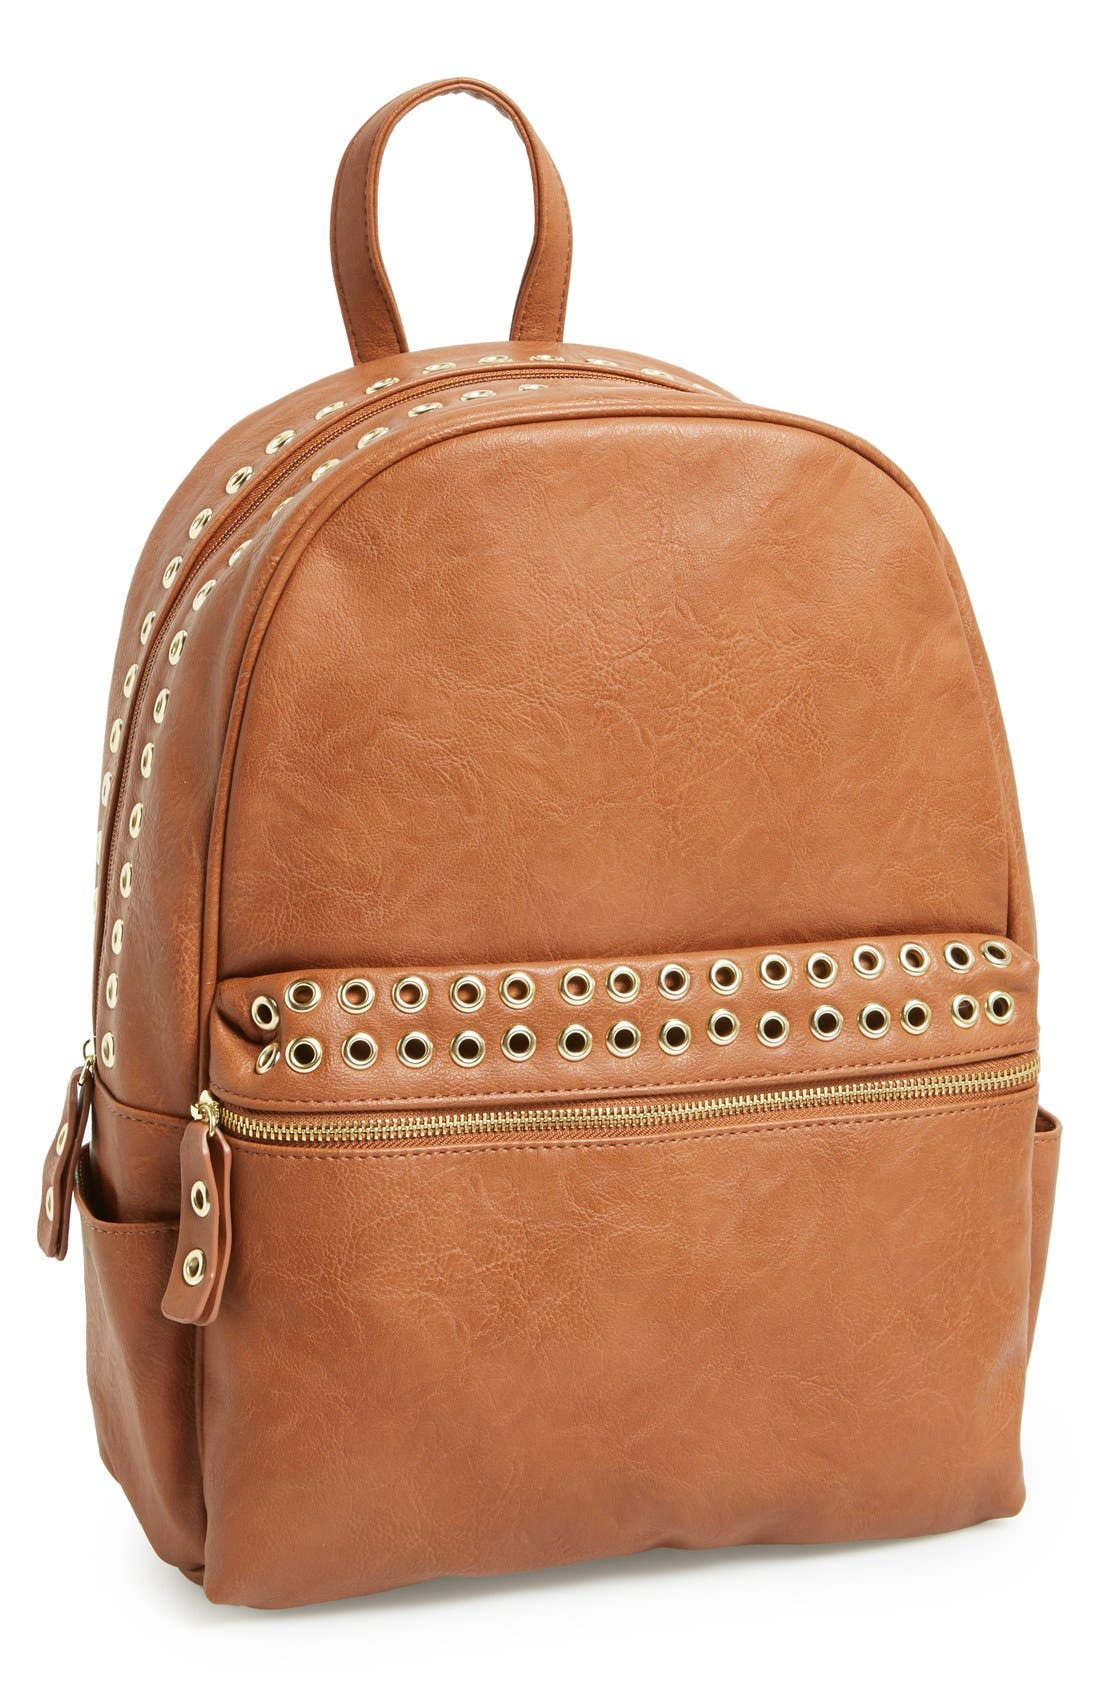 Alternate Image 1 Selected - Steve Madden Grommet Backpack